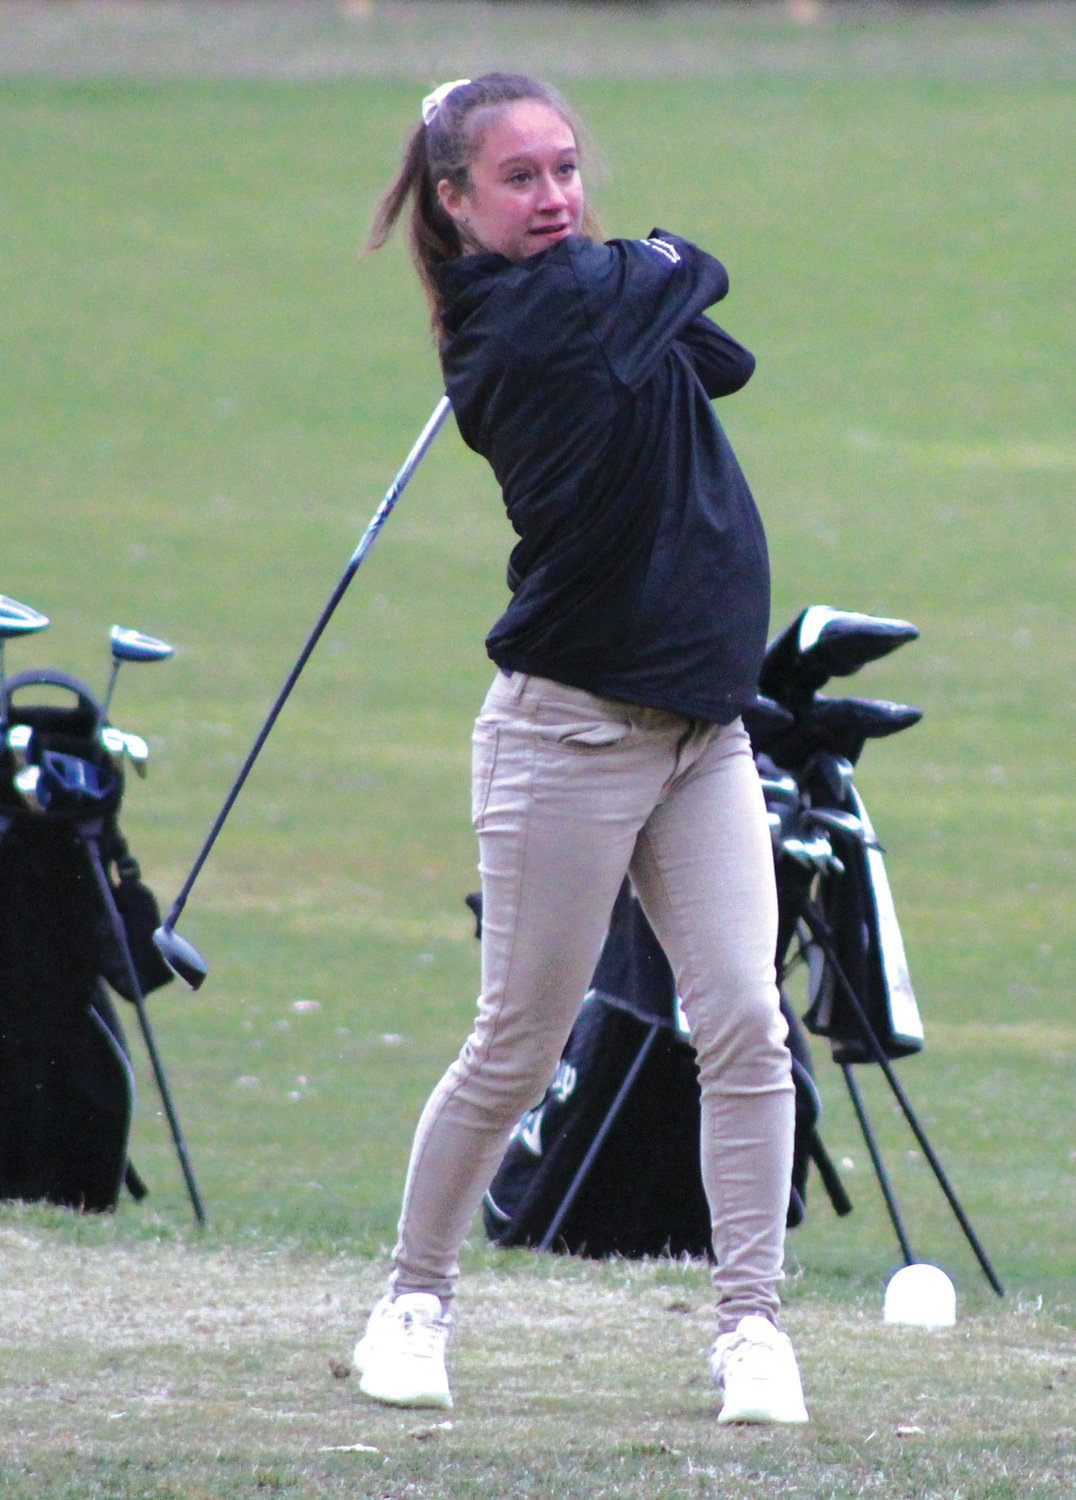 SWINGING AWAY: Pilgrim's Emma Williams tees off at a match last week.